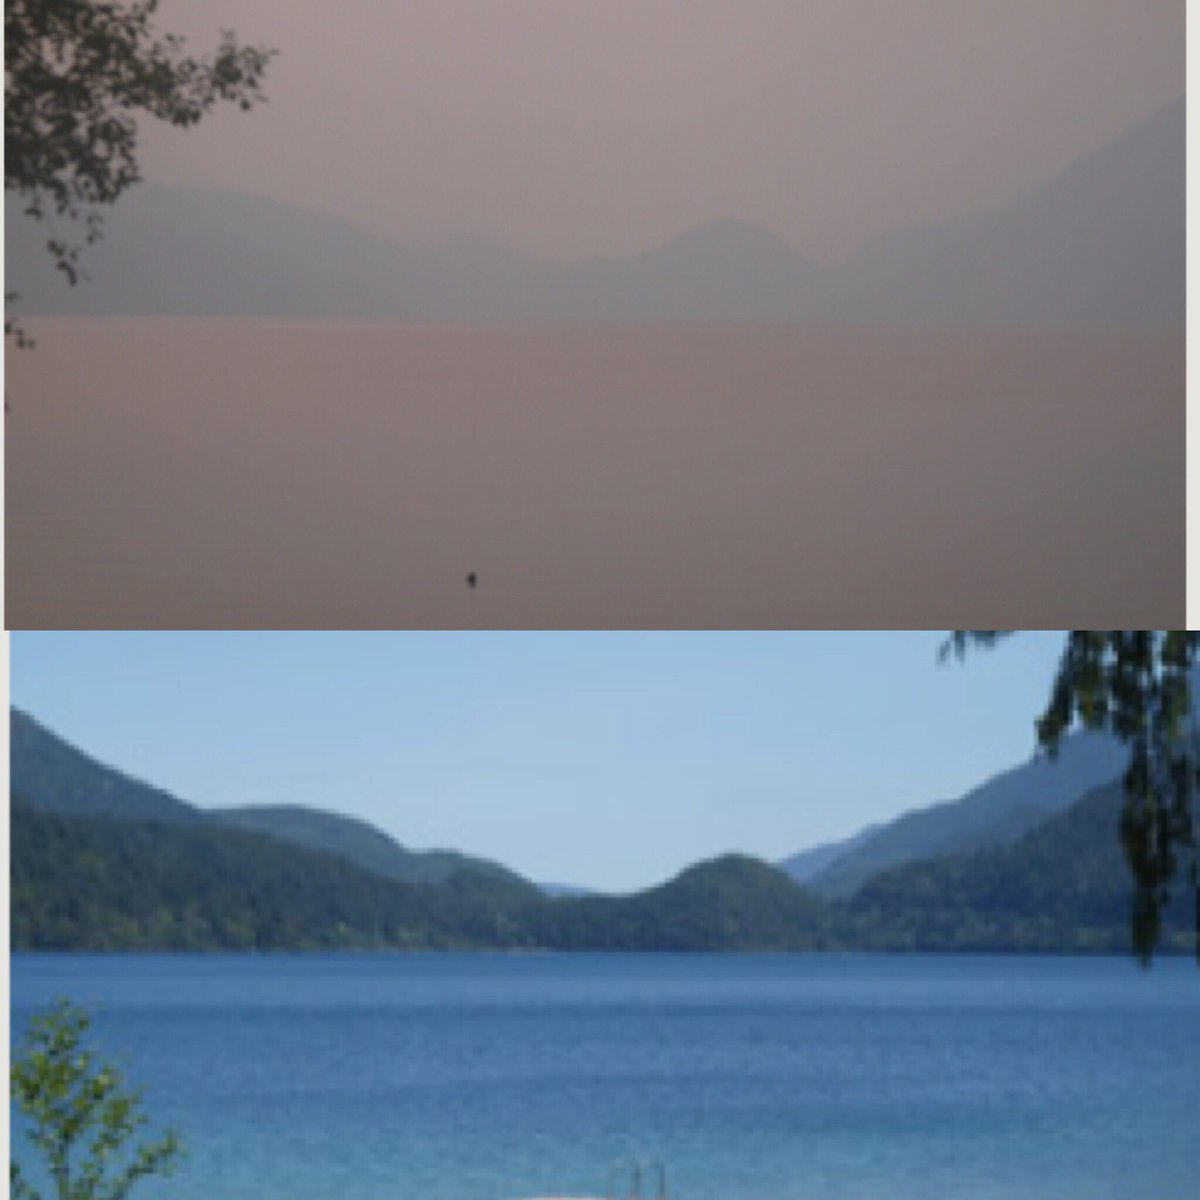 Check out the air quality on the #Olympic Peninsula. This is #LakeCrescent. Top image is from today, bottom shows visibility on a clear day  MORE &gt;&gt;&gt;  https:// q13fox.com/2018/08/13/smo ke-from-british-columbia-now-blowing-into-western-washington/ &nbsp; …  #Q13FOX<br>http://pic.twitter.com/0d5UWeOK9u